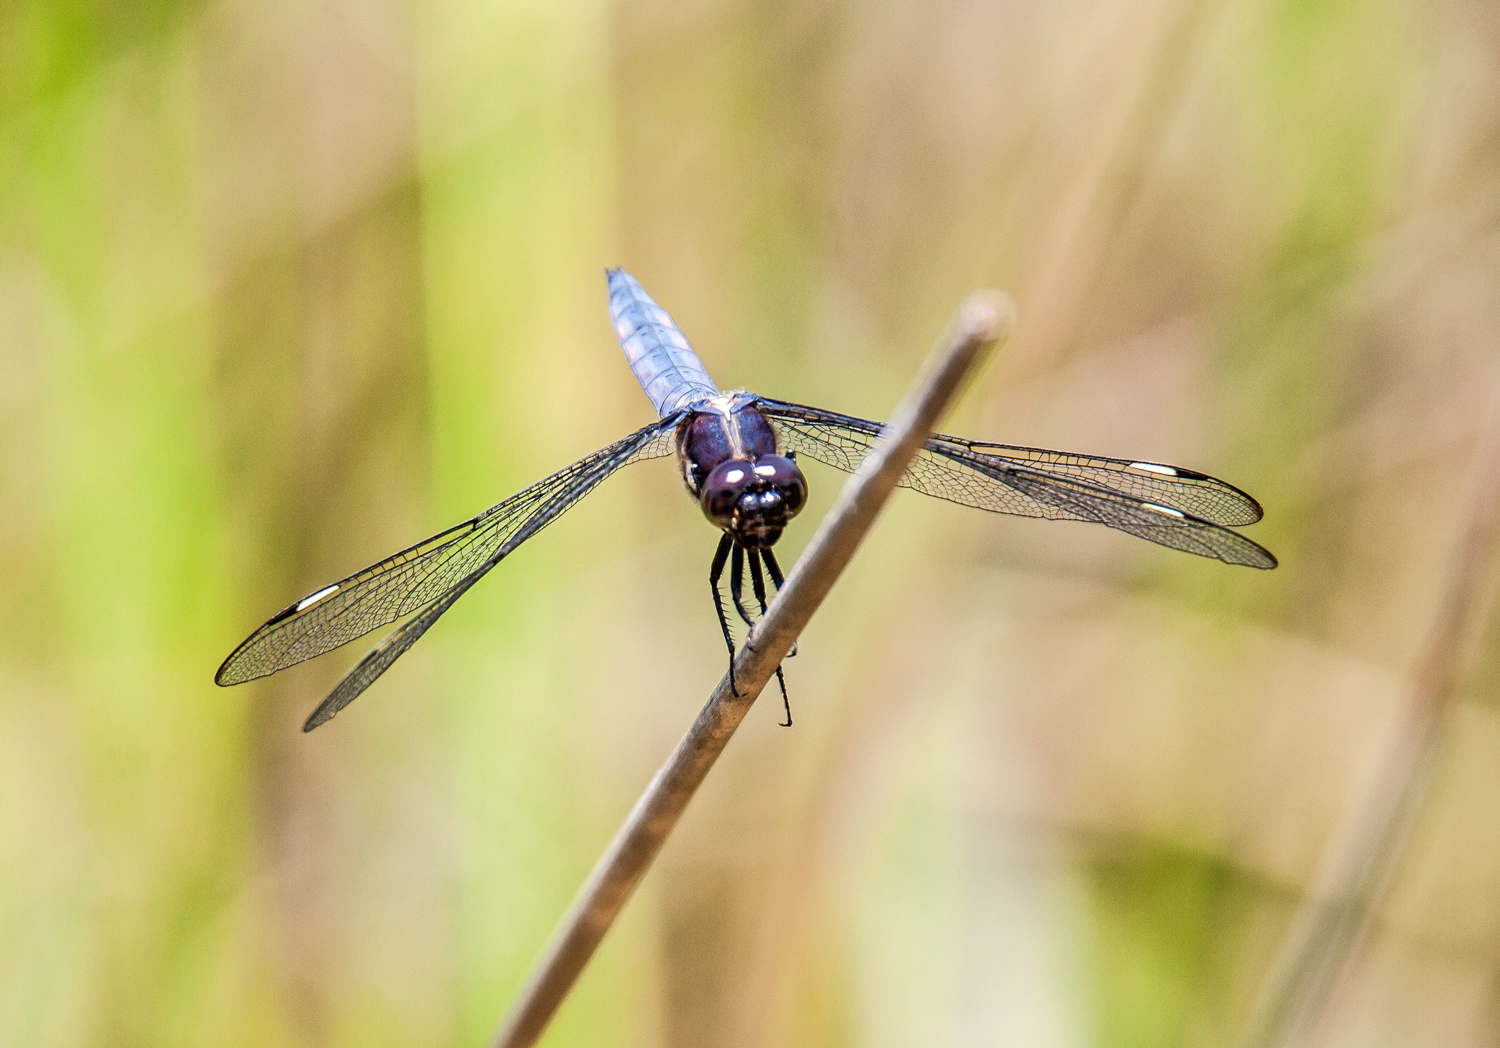 Spangled Skimmer dragonfly | Mike Powell - photo#40